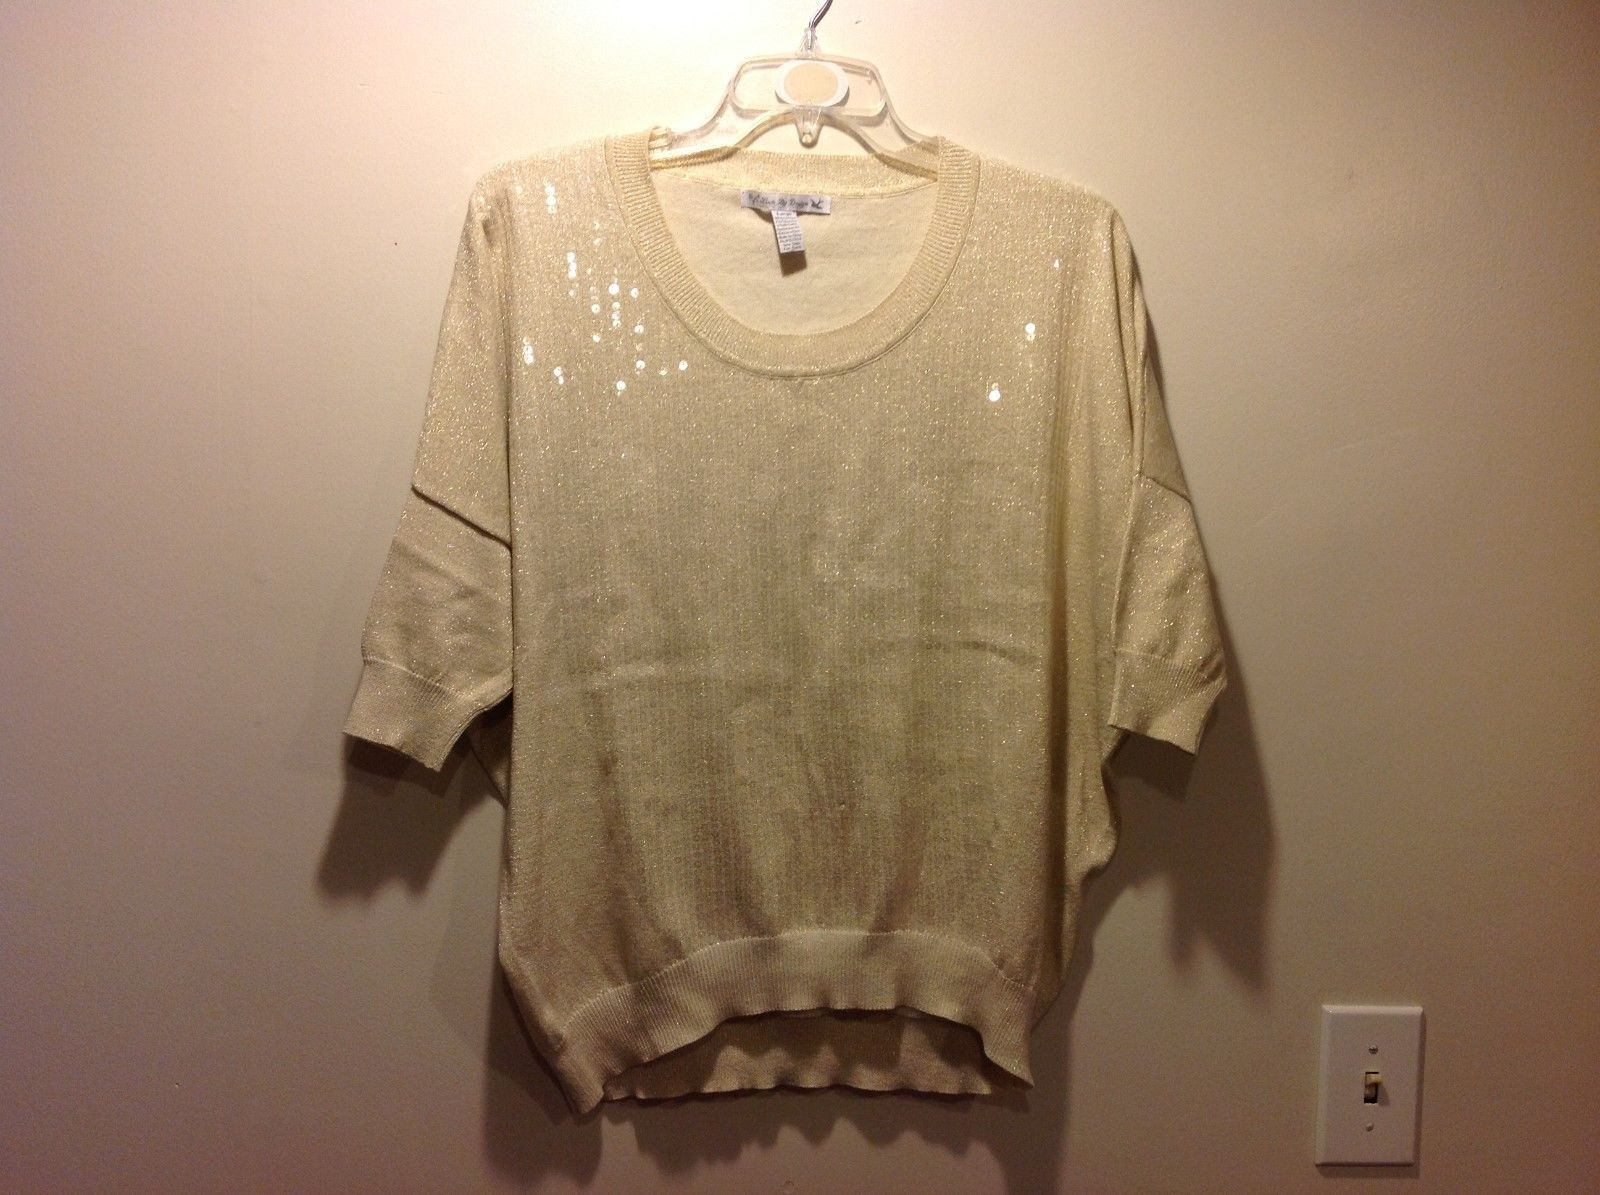 Neutral Tone Clear Sequined and Gold Sparkled Sweater Size Large